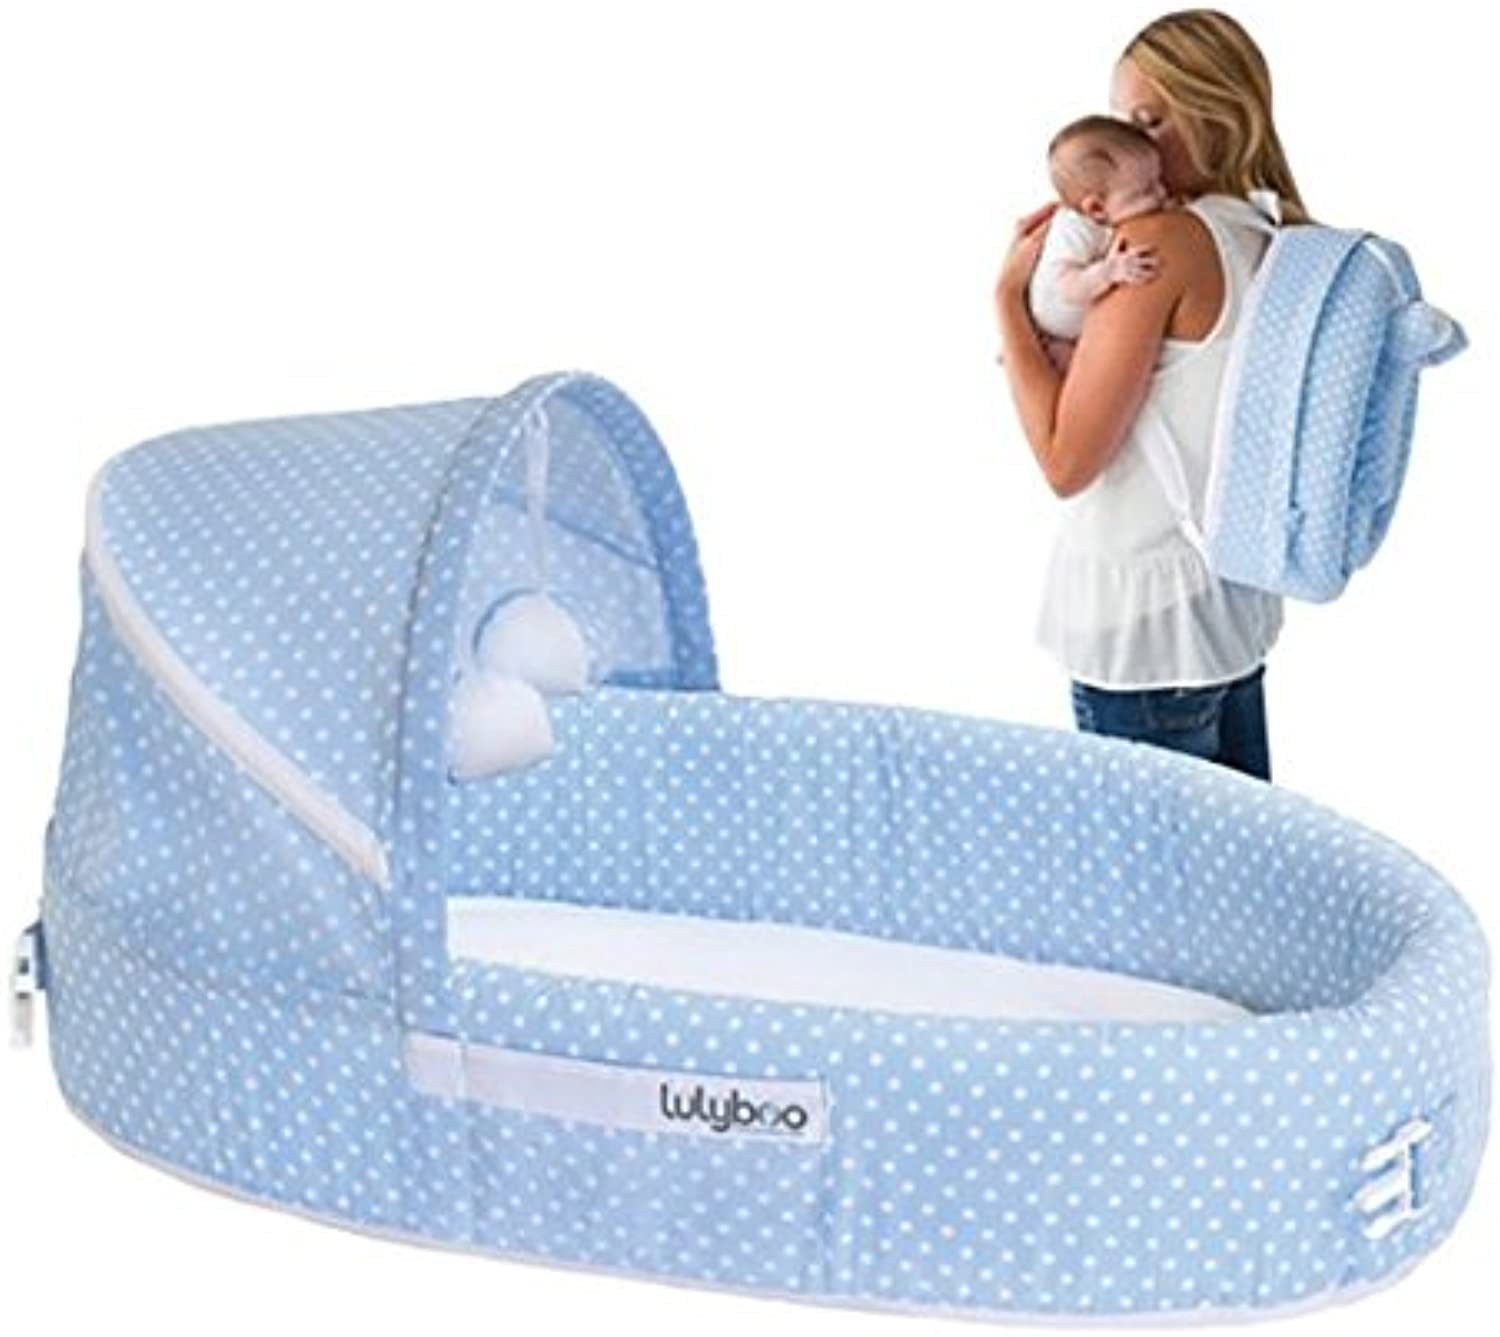 LulyBoo Baby Lounger To Go - Foldable Travel Bassinet - With Canopy, Toy-Bar And Plush Toys (bluee)